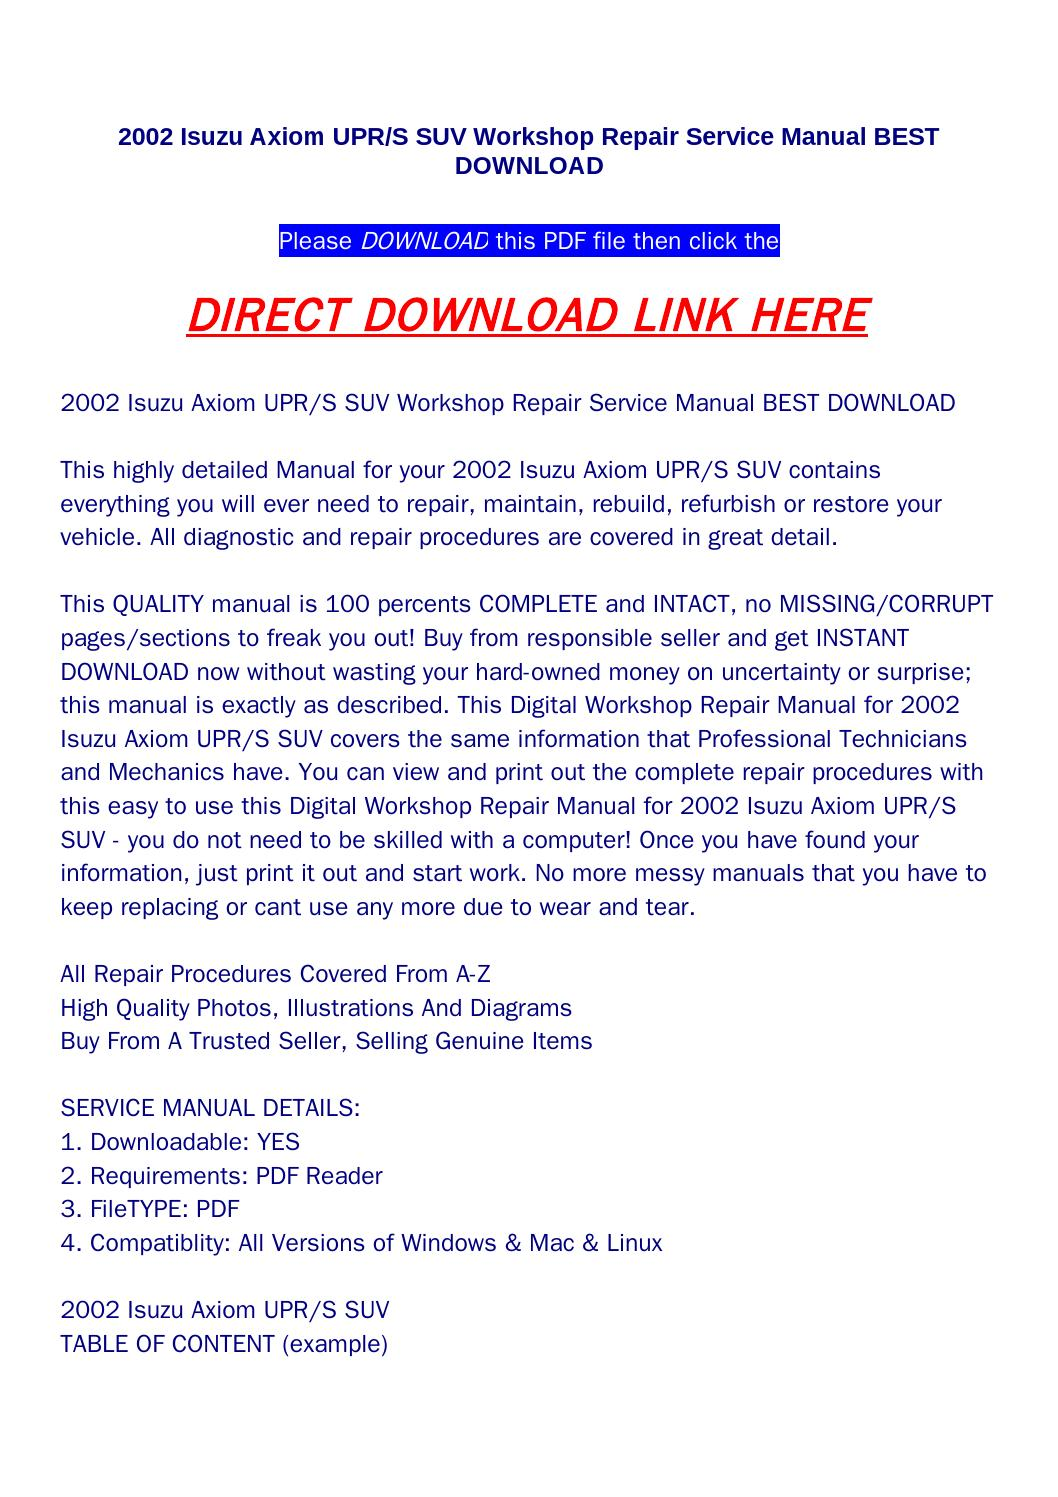 2002 isuzu axiom upr s suv workshop repair service manual best download by  bonus300 - issuu